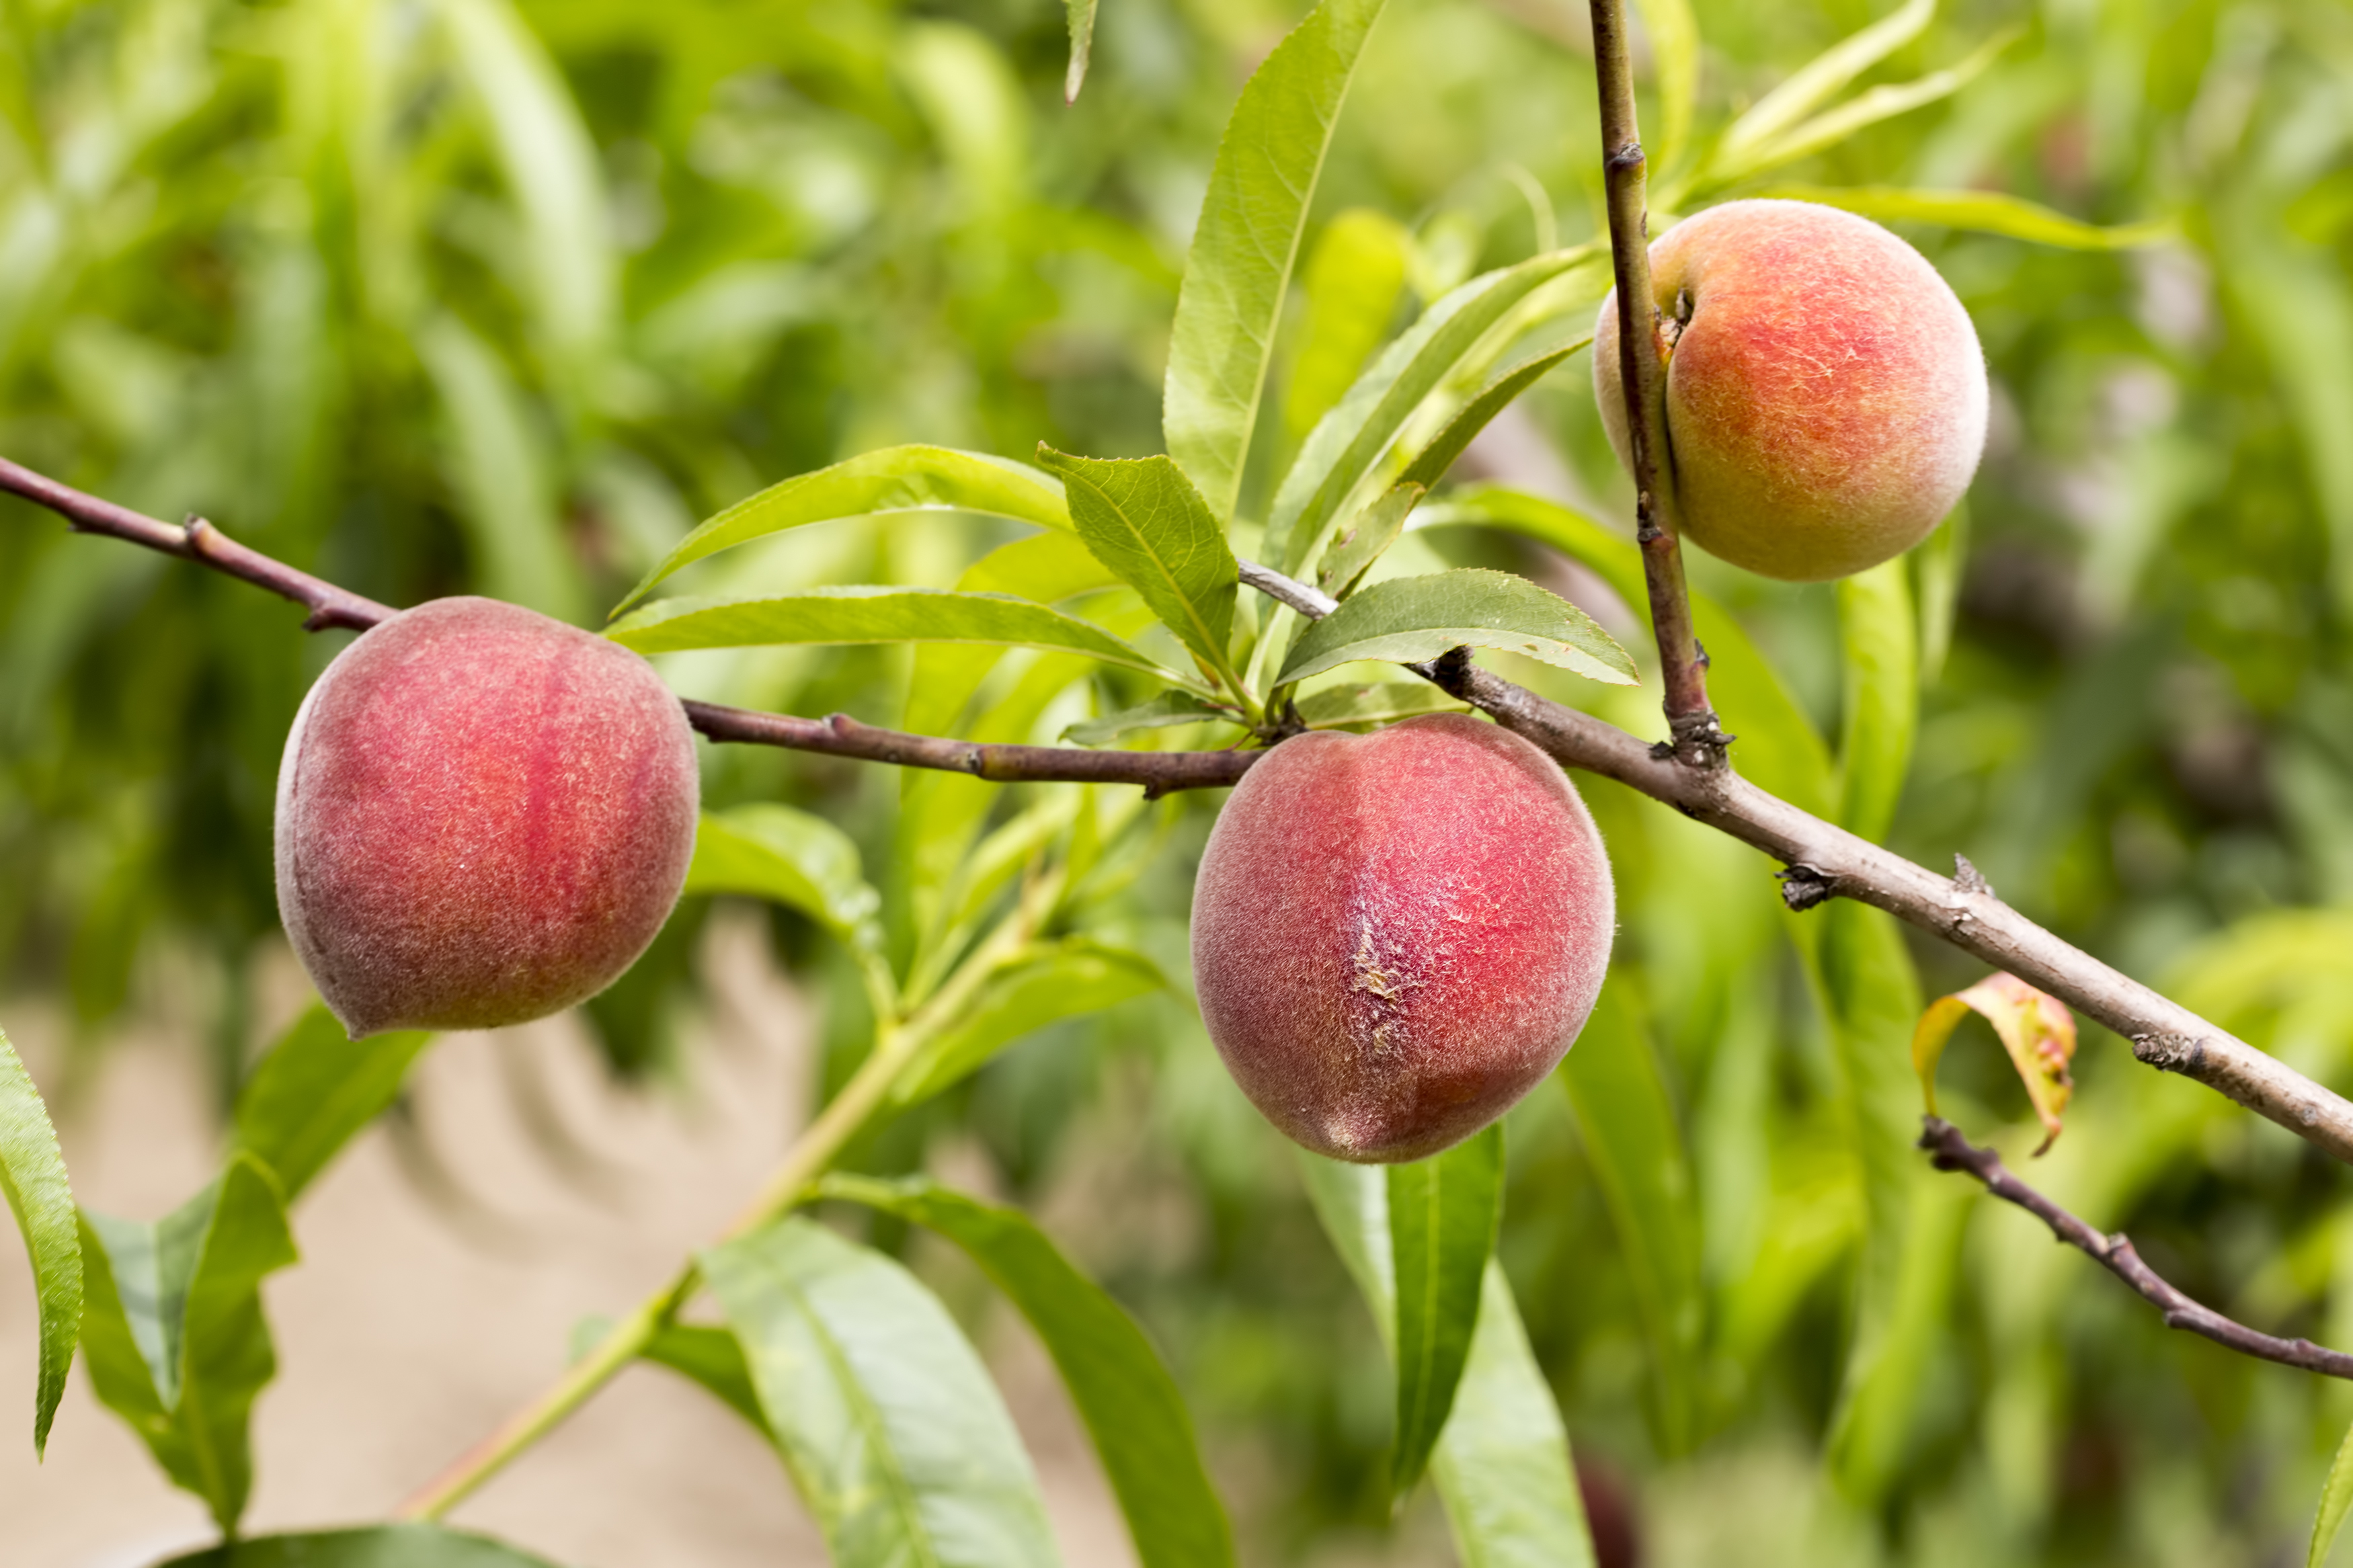 List of Types of Peach Trees | Home Guides | SF Gate